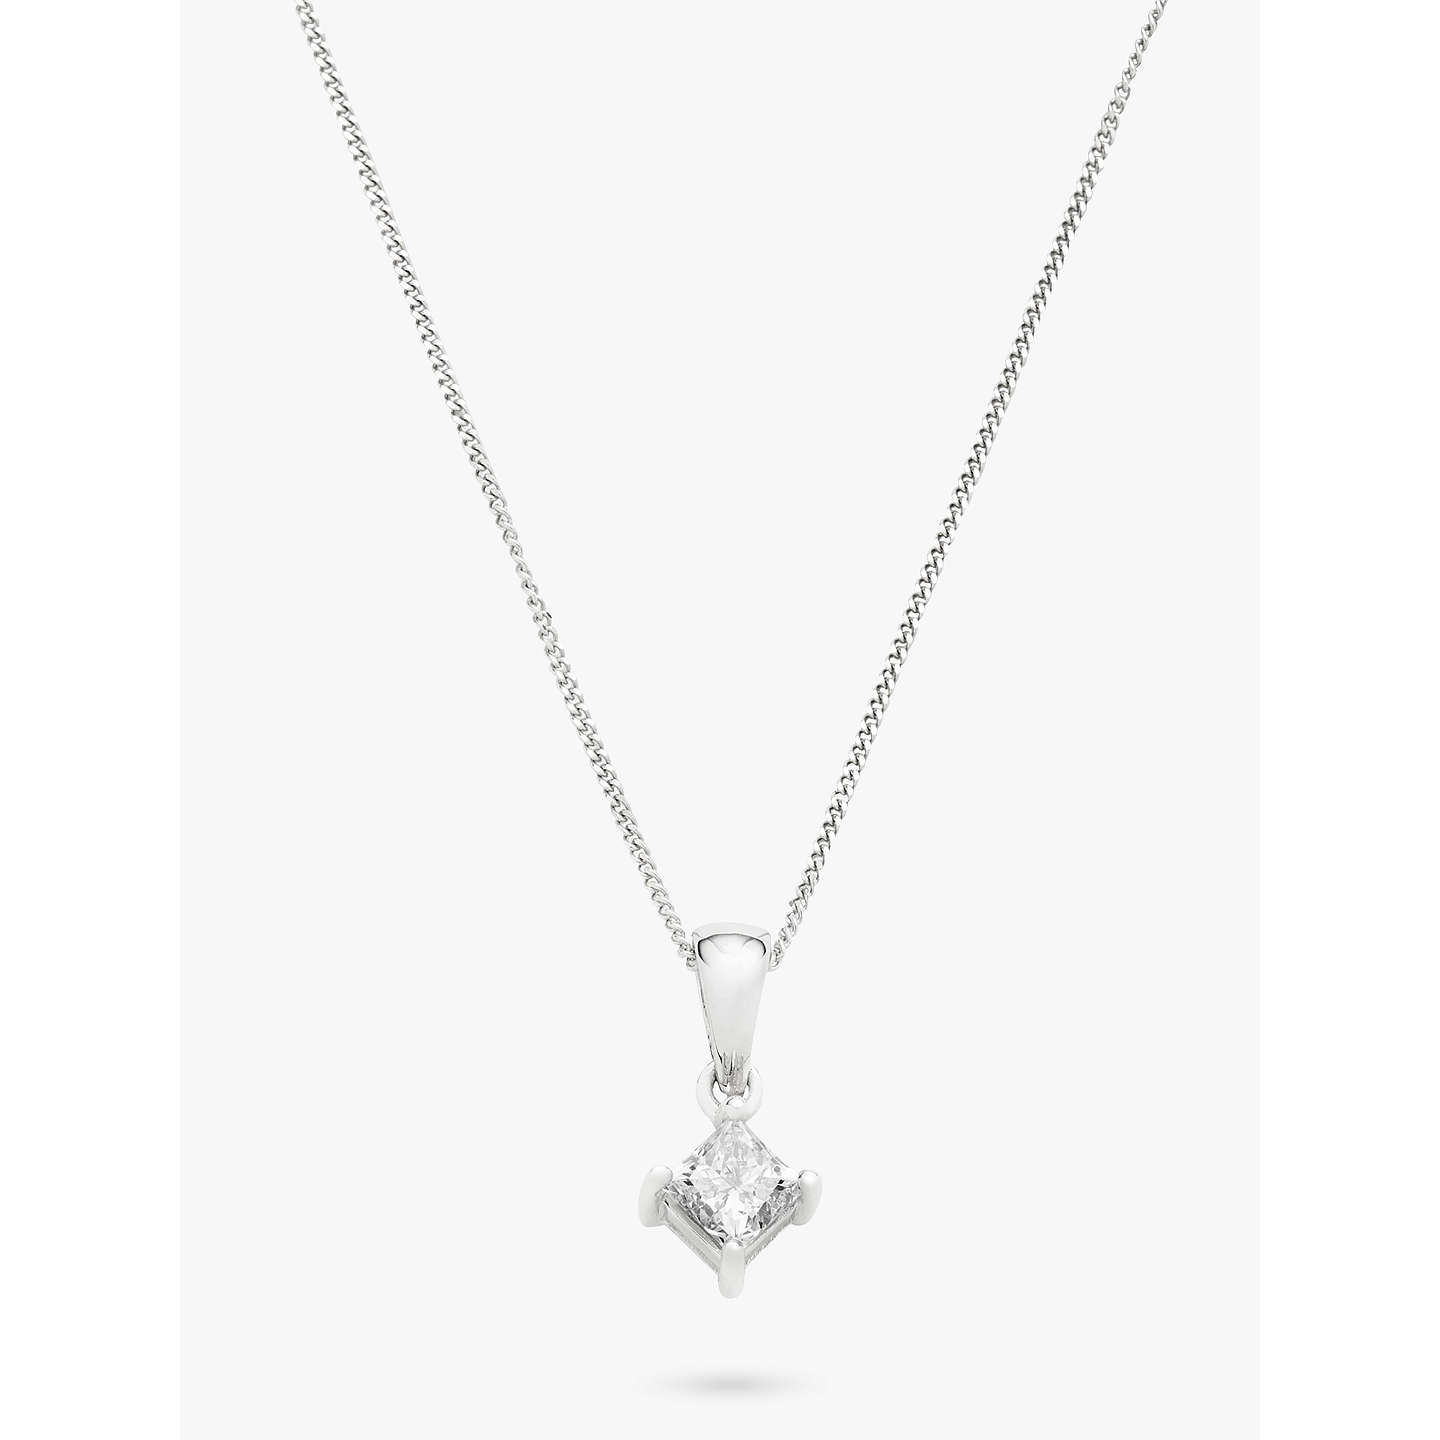 pendant education solitaire diamond lonit necklace pendants cremation